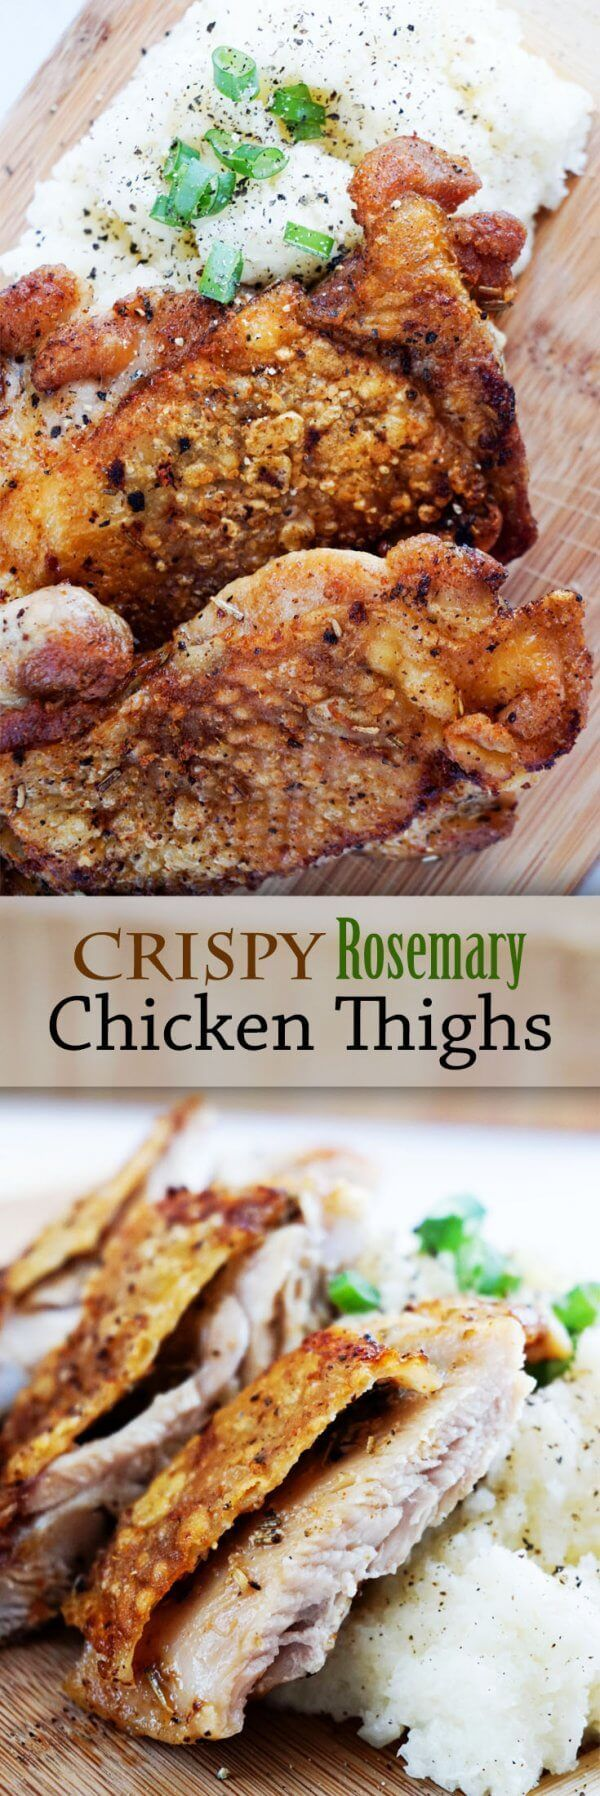 Crispy Chicken Thighs with Rosemary Butter!